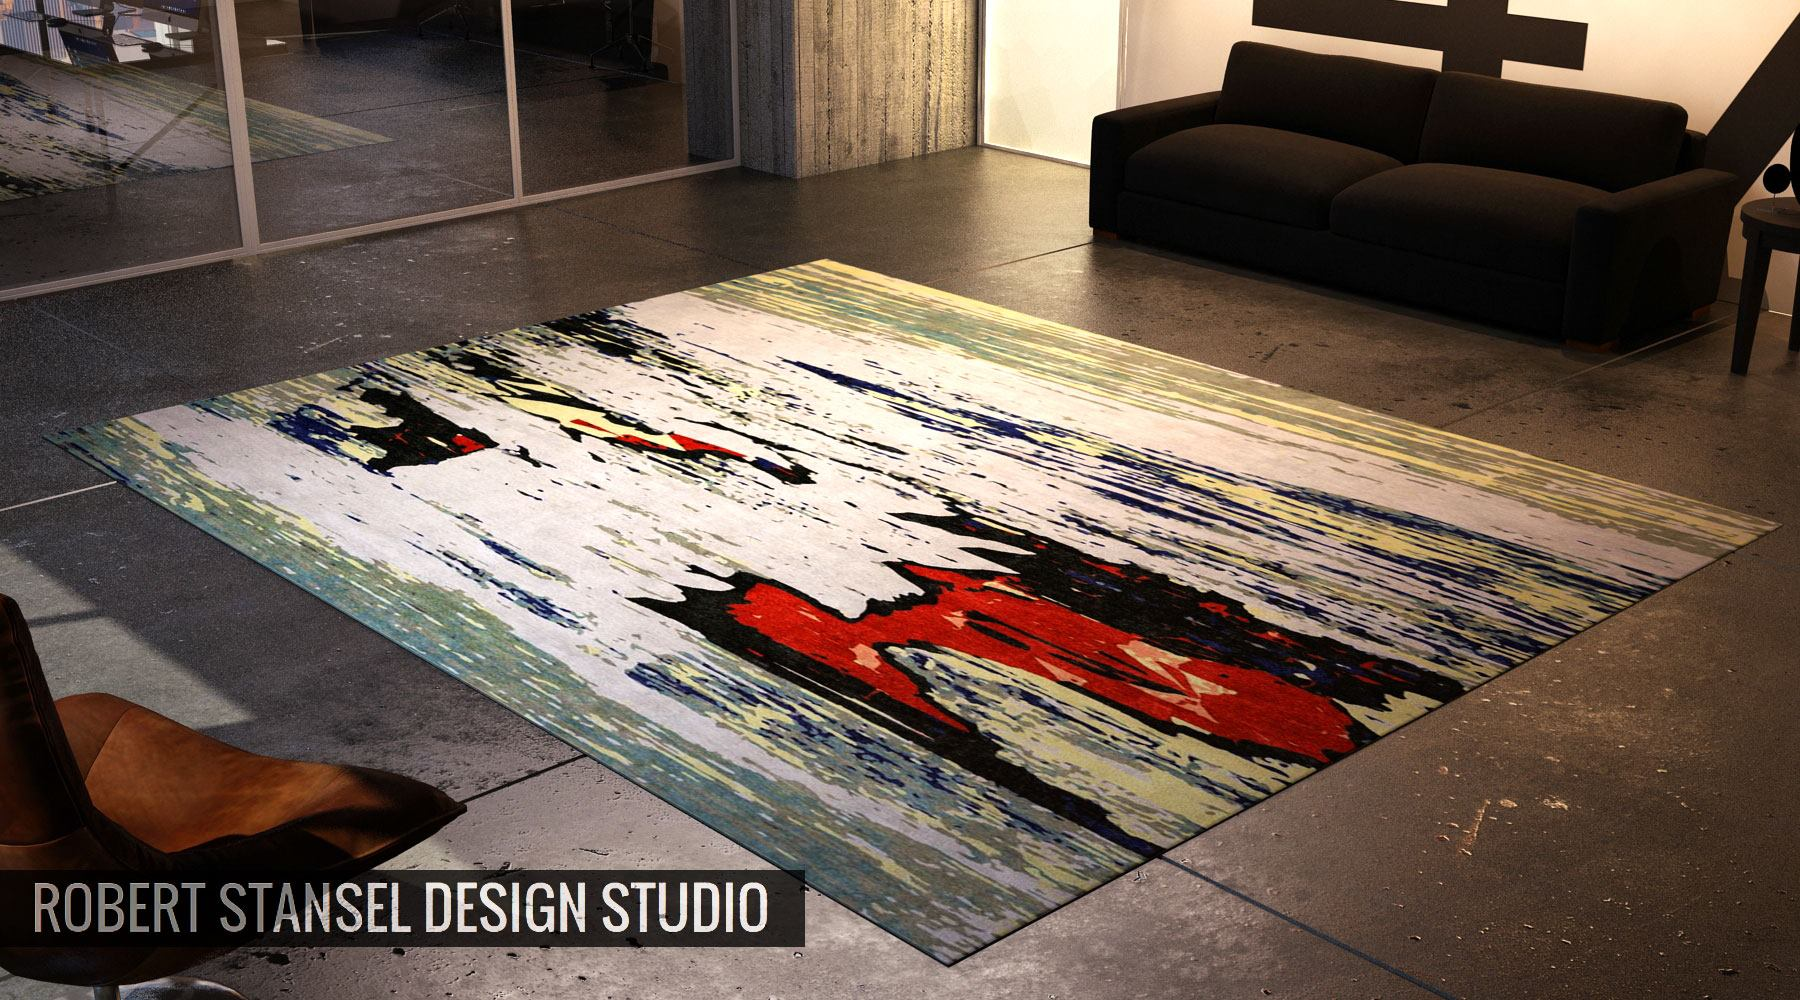 12x15' all wool rug proposal for Oklahoma commercial space. Rendering by Miguel Angel Andrade Perez of MAAP3D.